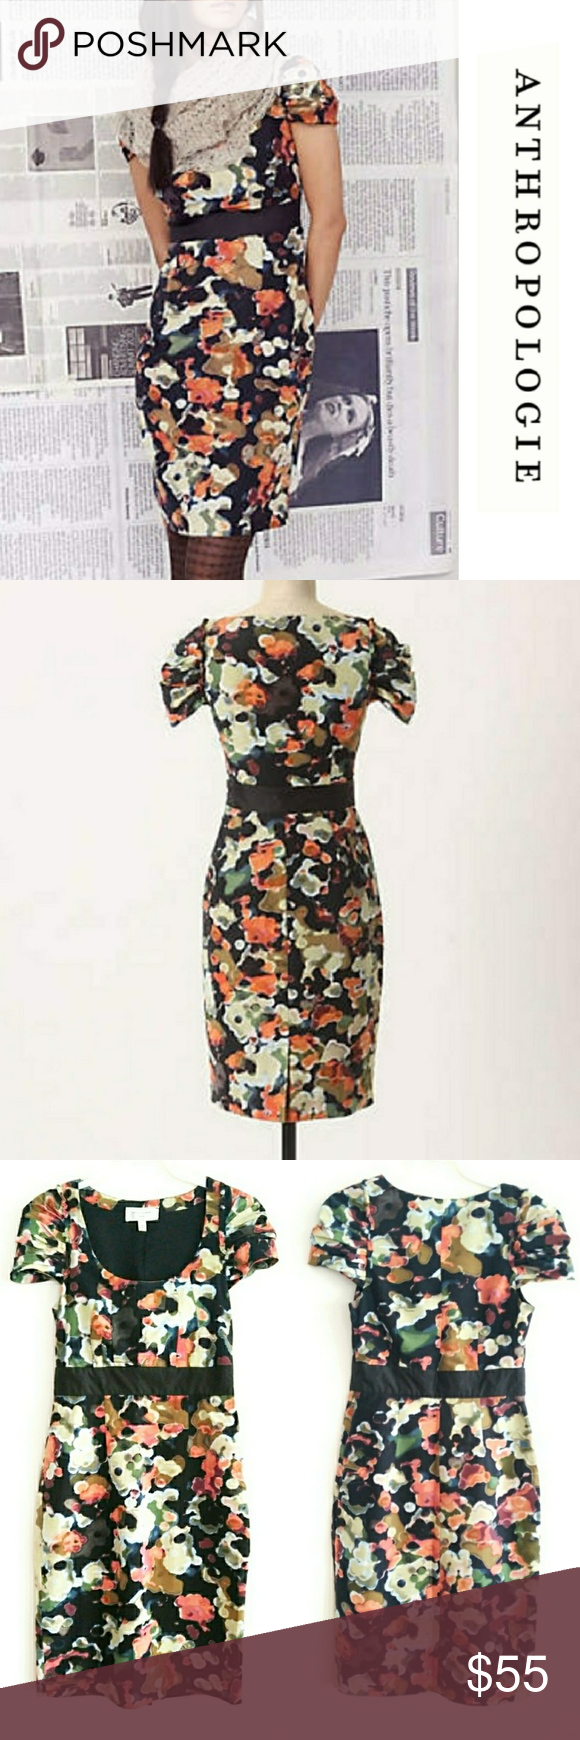 39949420ae7c8 🆕Anthro Pittore Silk Watercolor Floral Dress 0 Anthropologie Pittore Silk  Blend Dress. Beautiful Earthtone